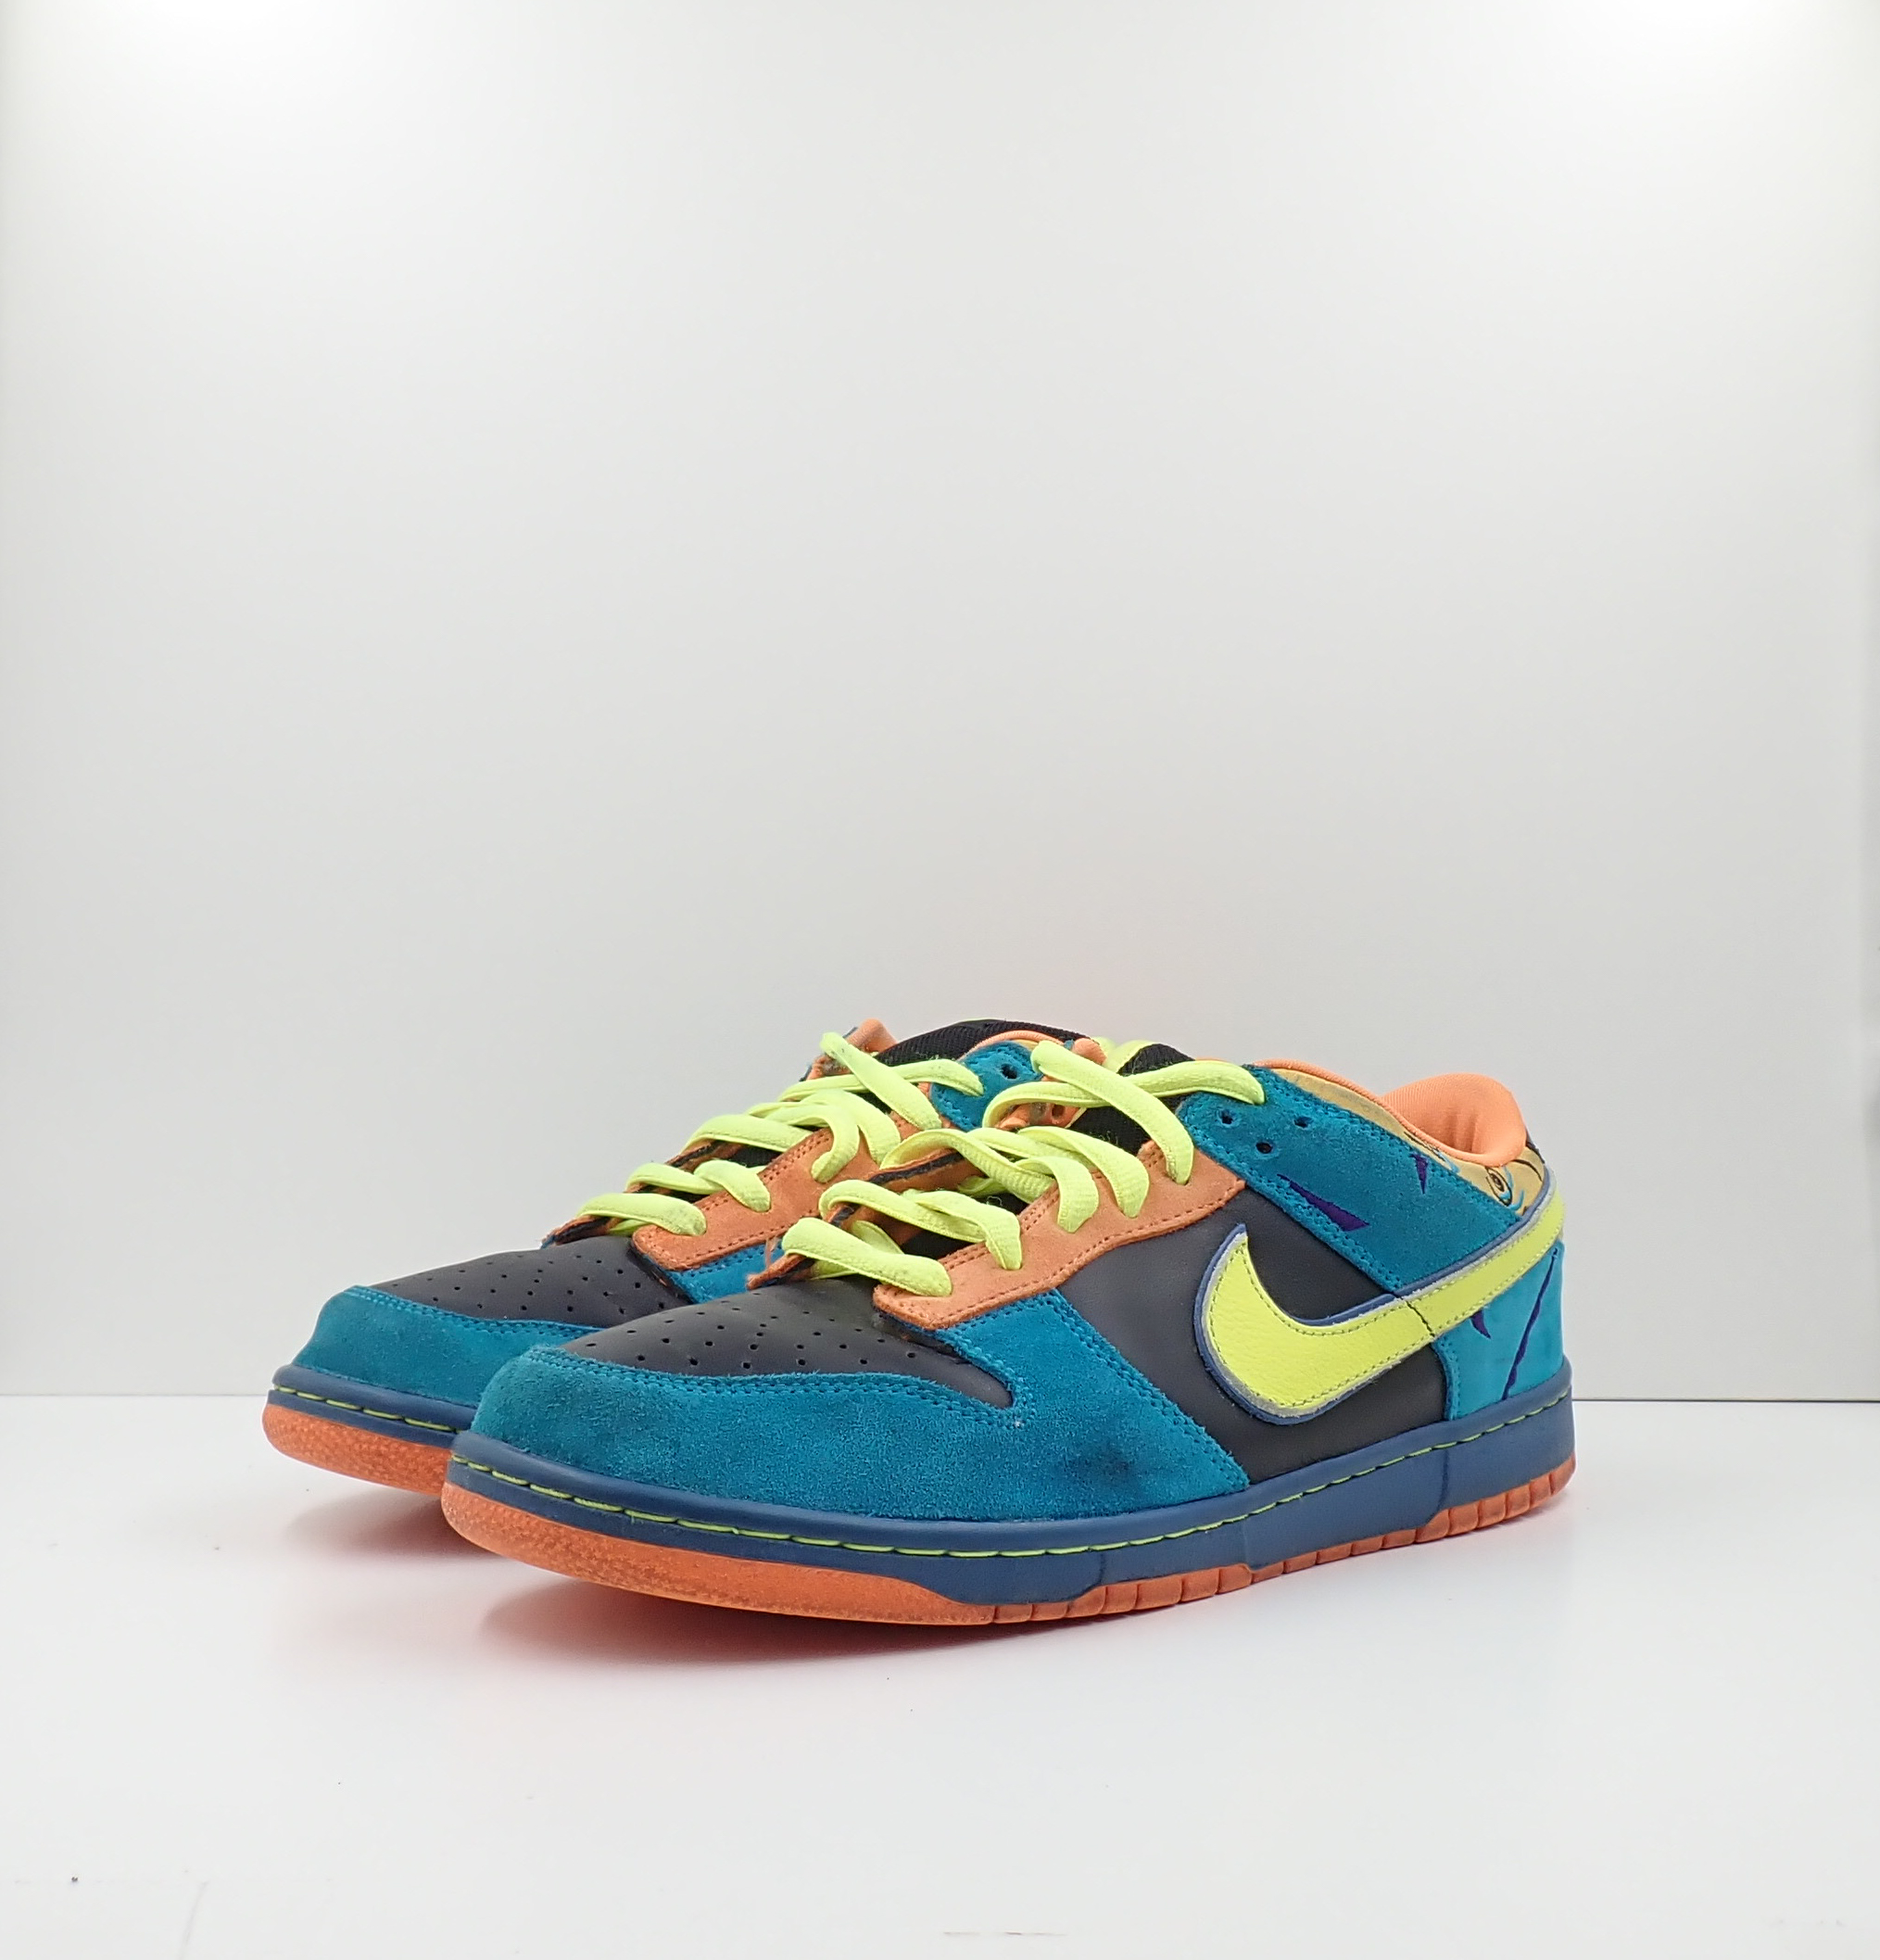 Nike Dunk SB Low Skate or Die